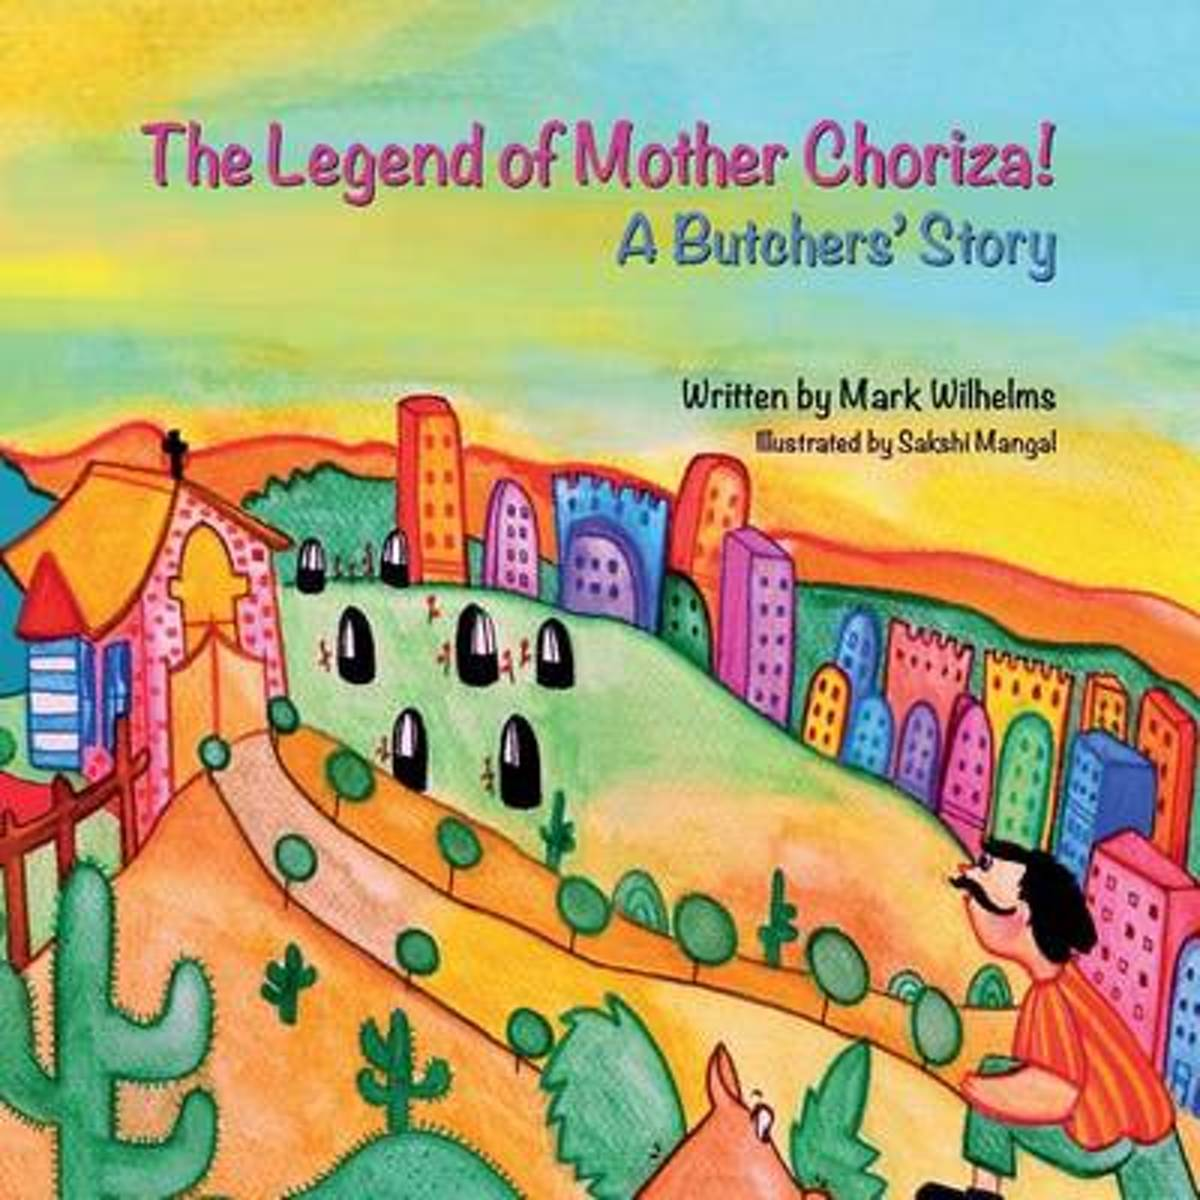 The Legend of Mother Choriza!